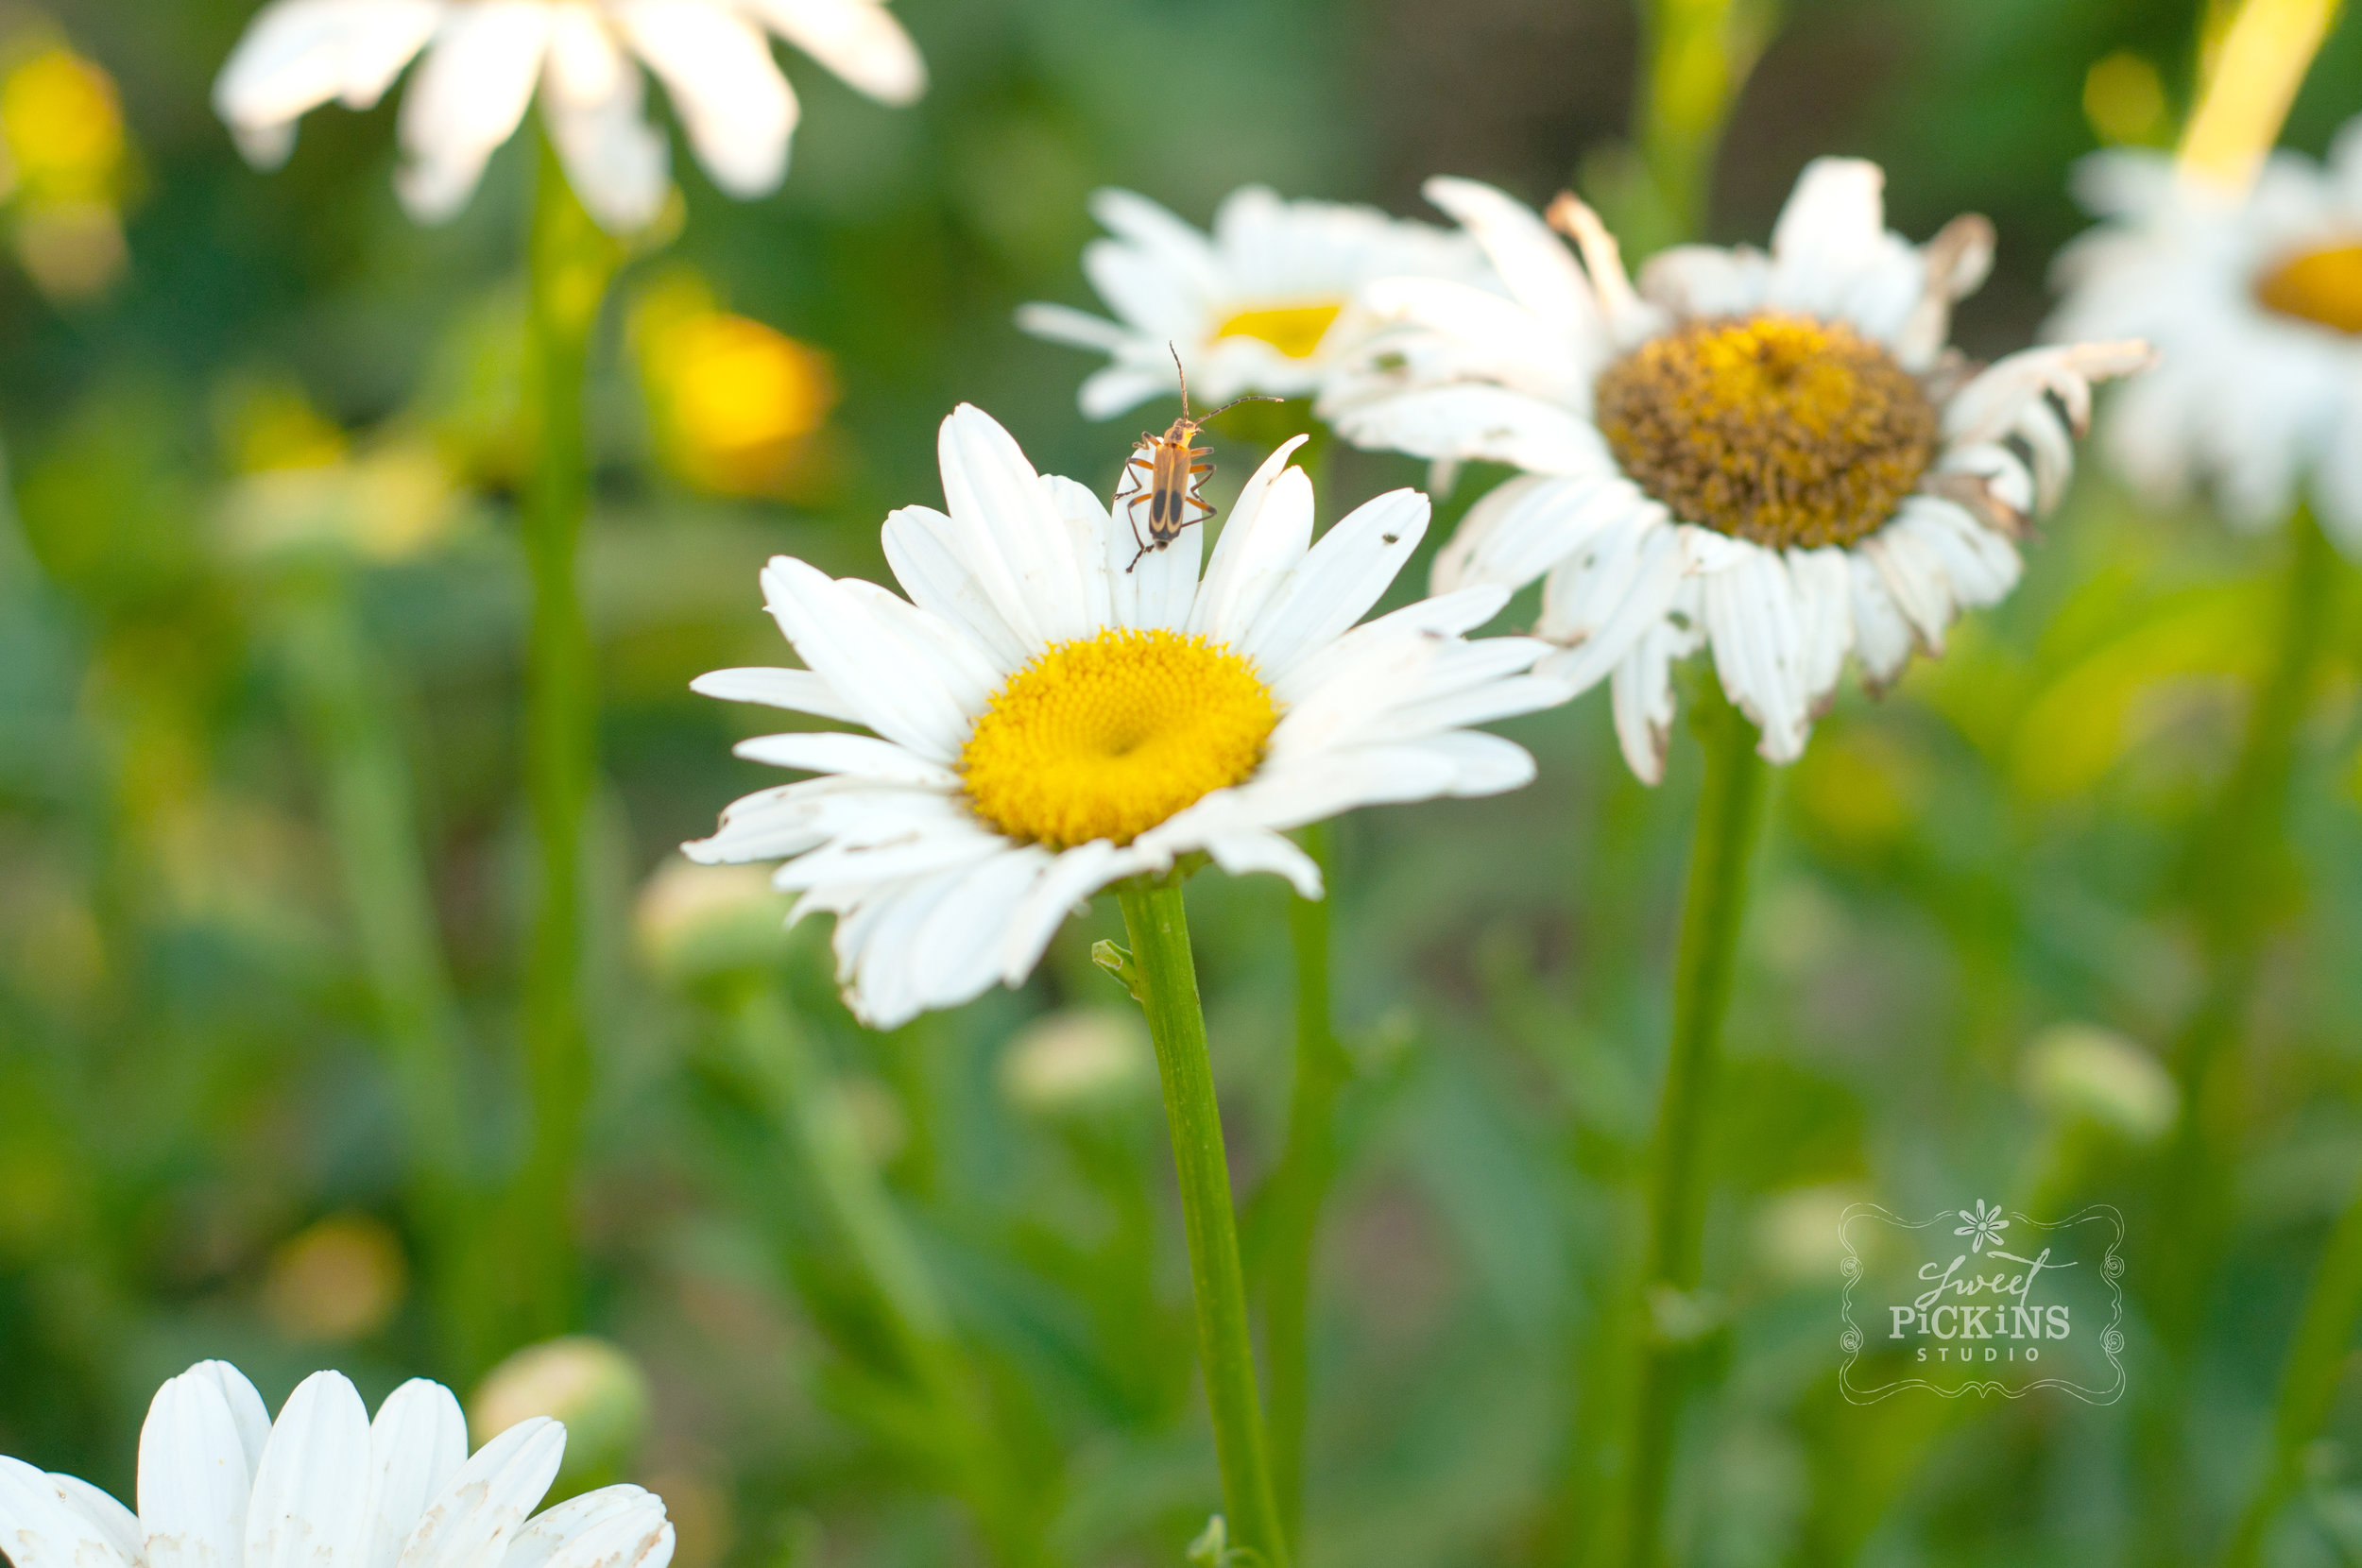 Shasta Daisies and Insect in Garden